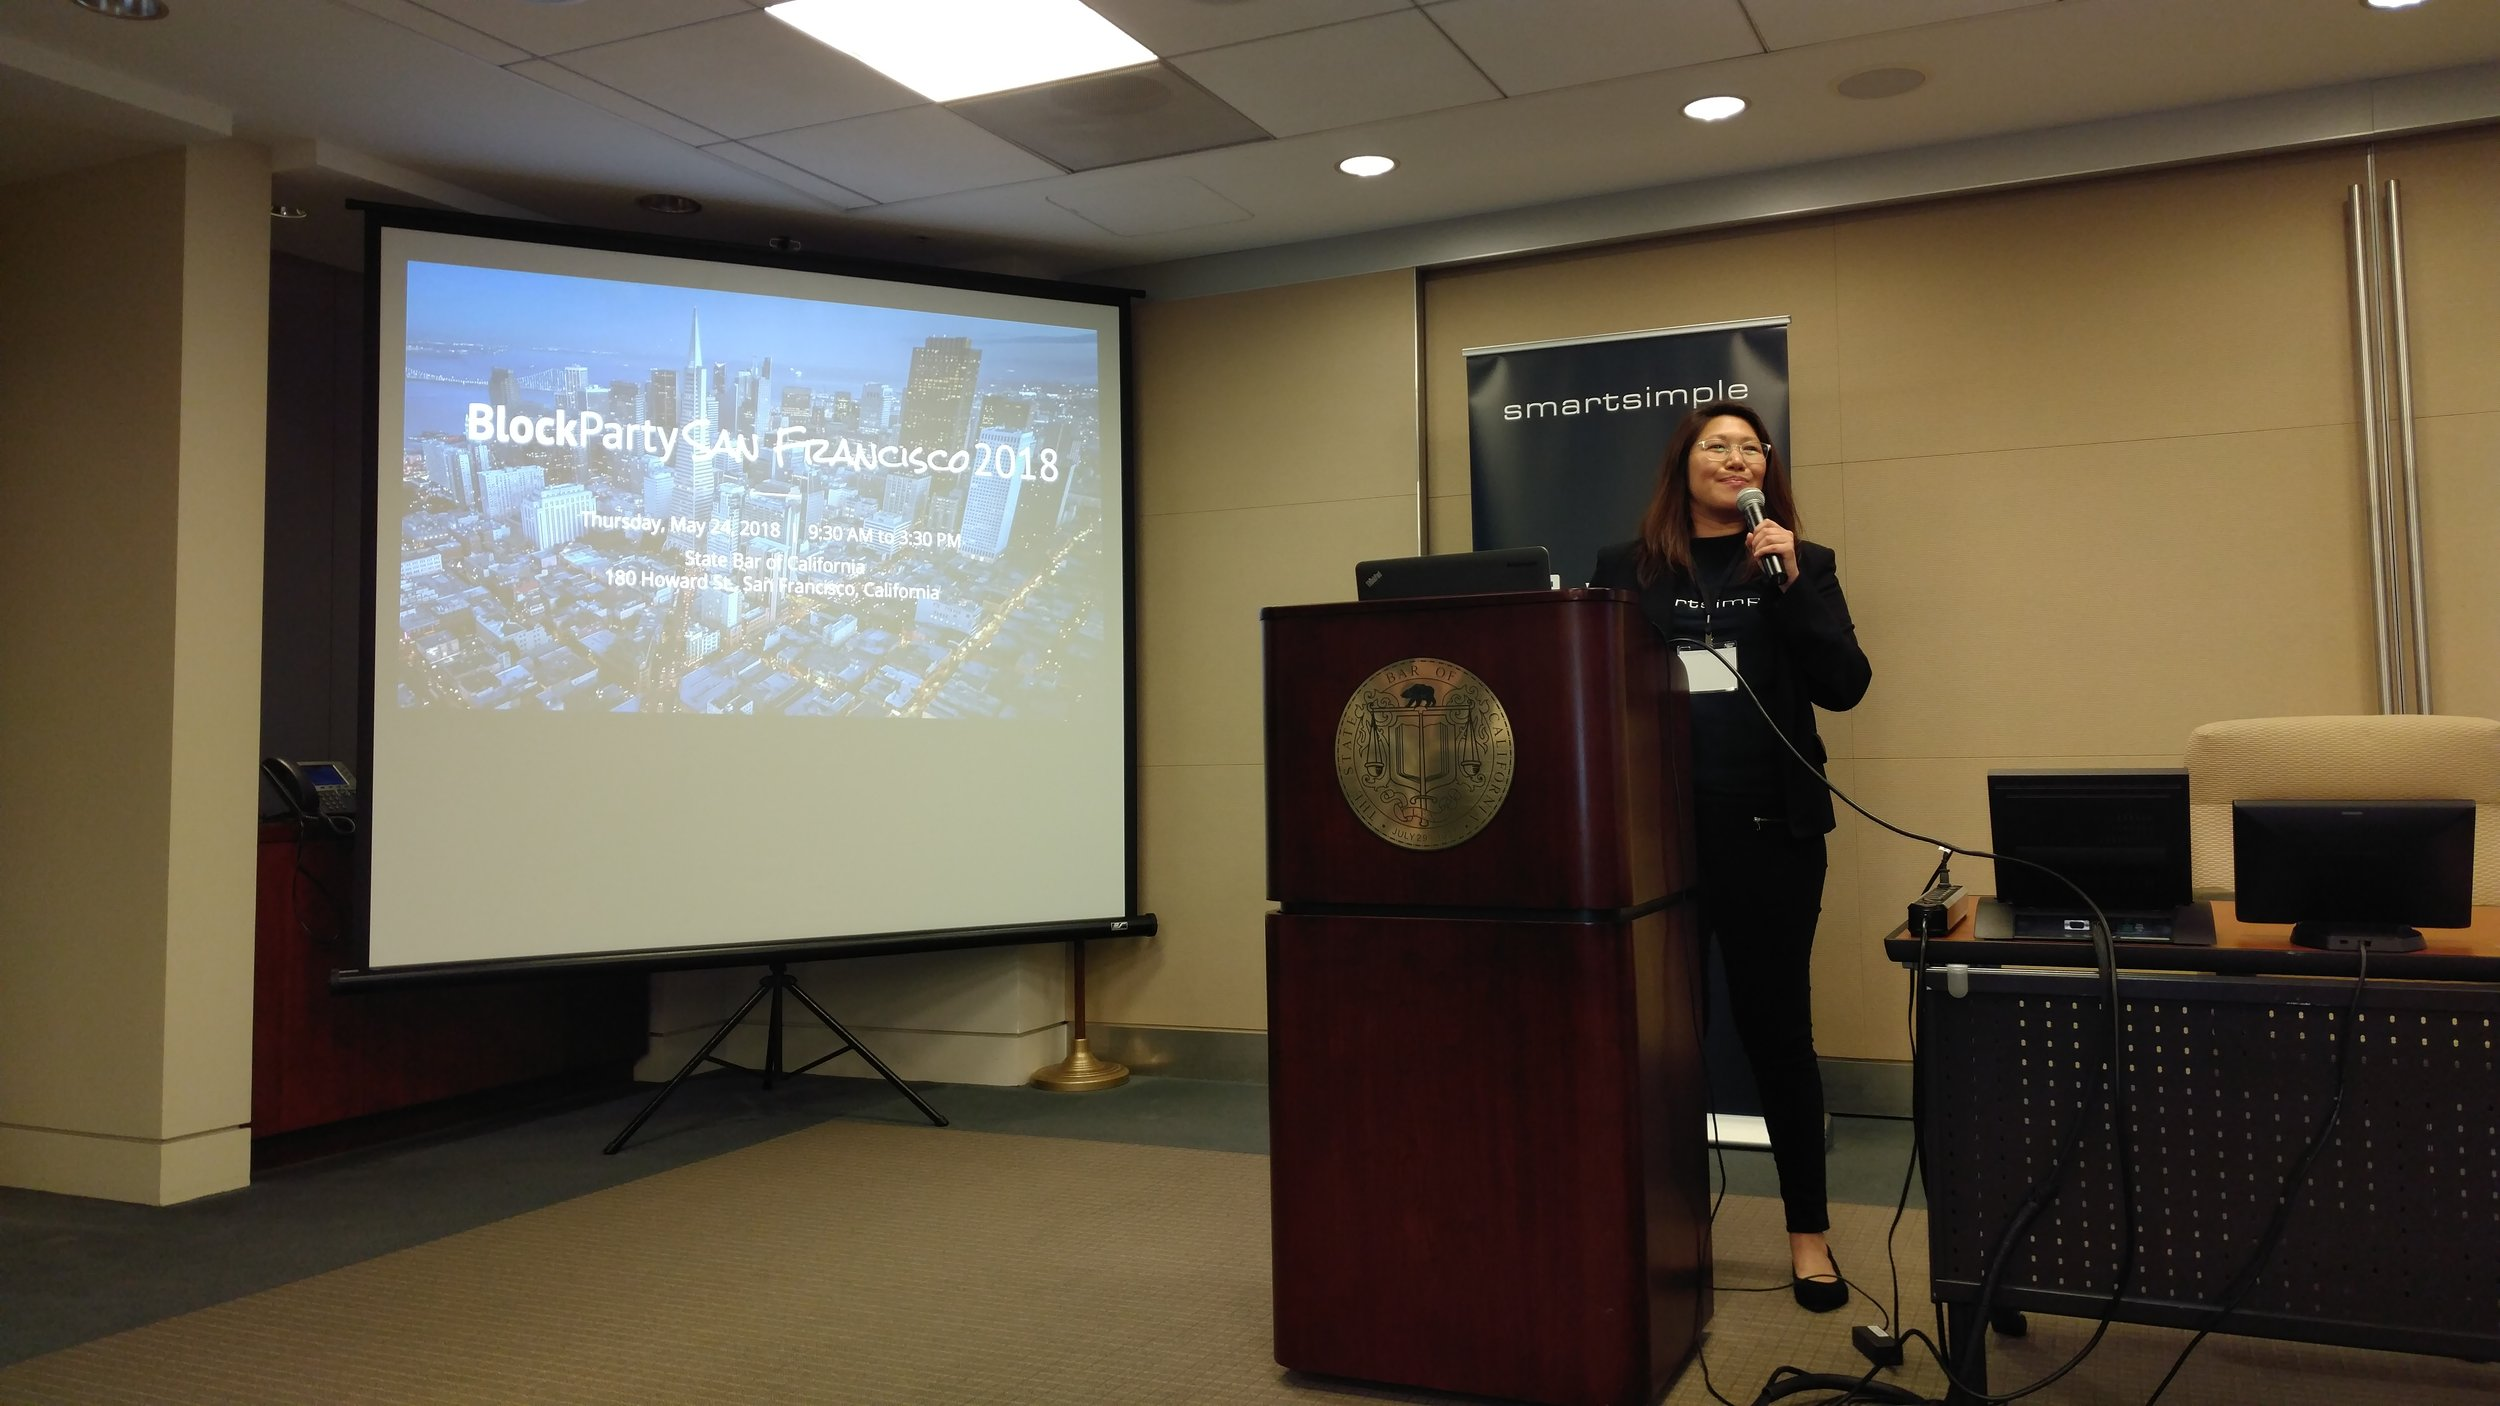 SmartSimple's Marketing Specialist, Claudine Ting kicking things off at our Block Party San Francisco